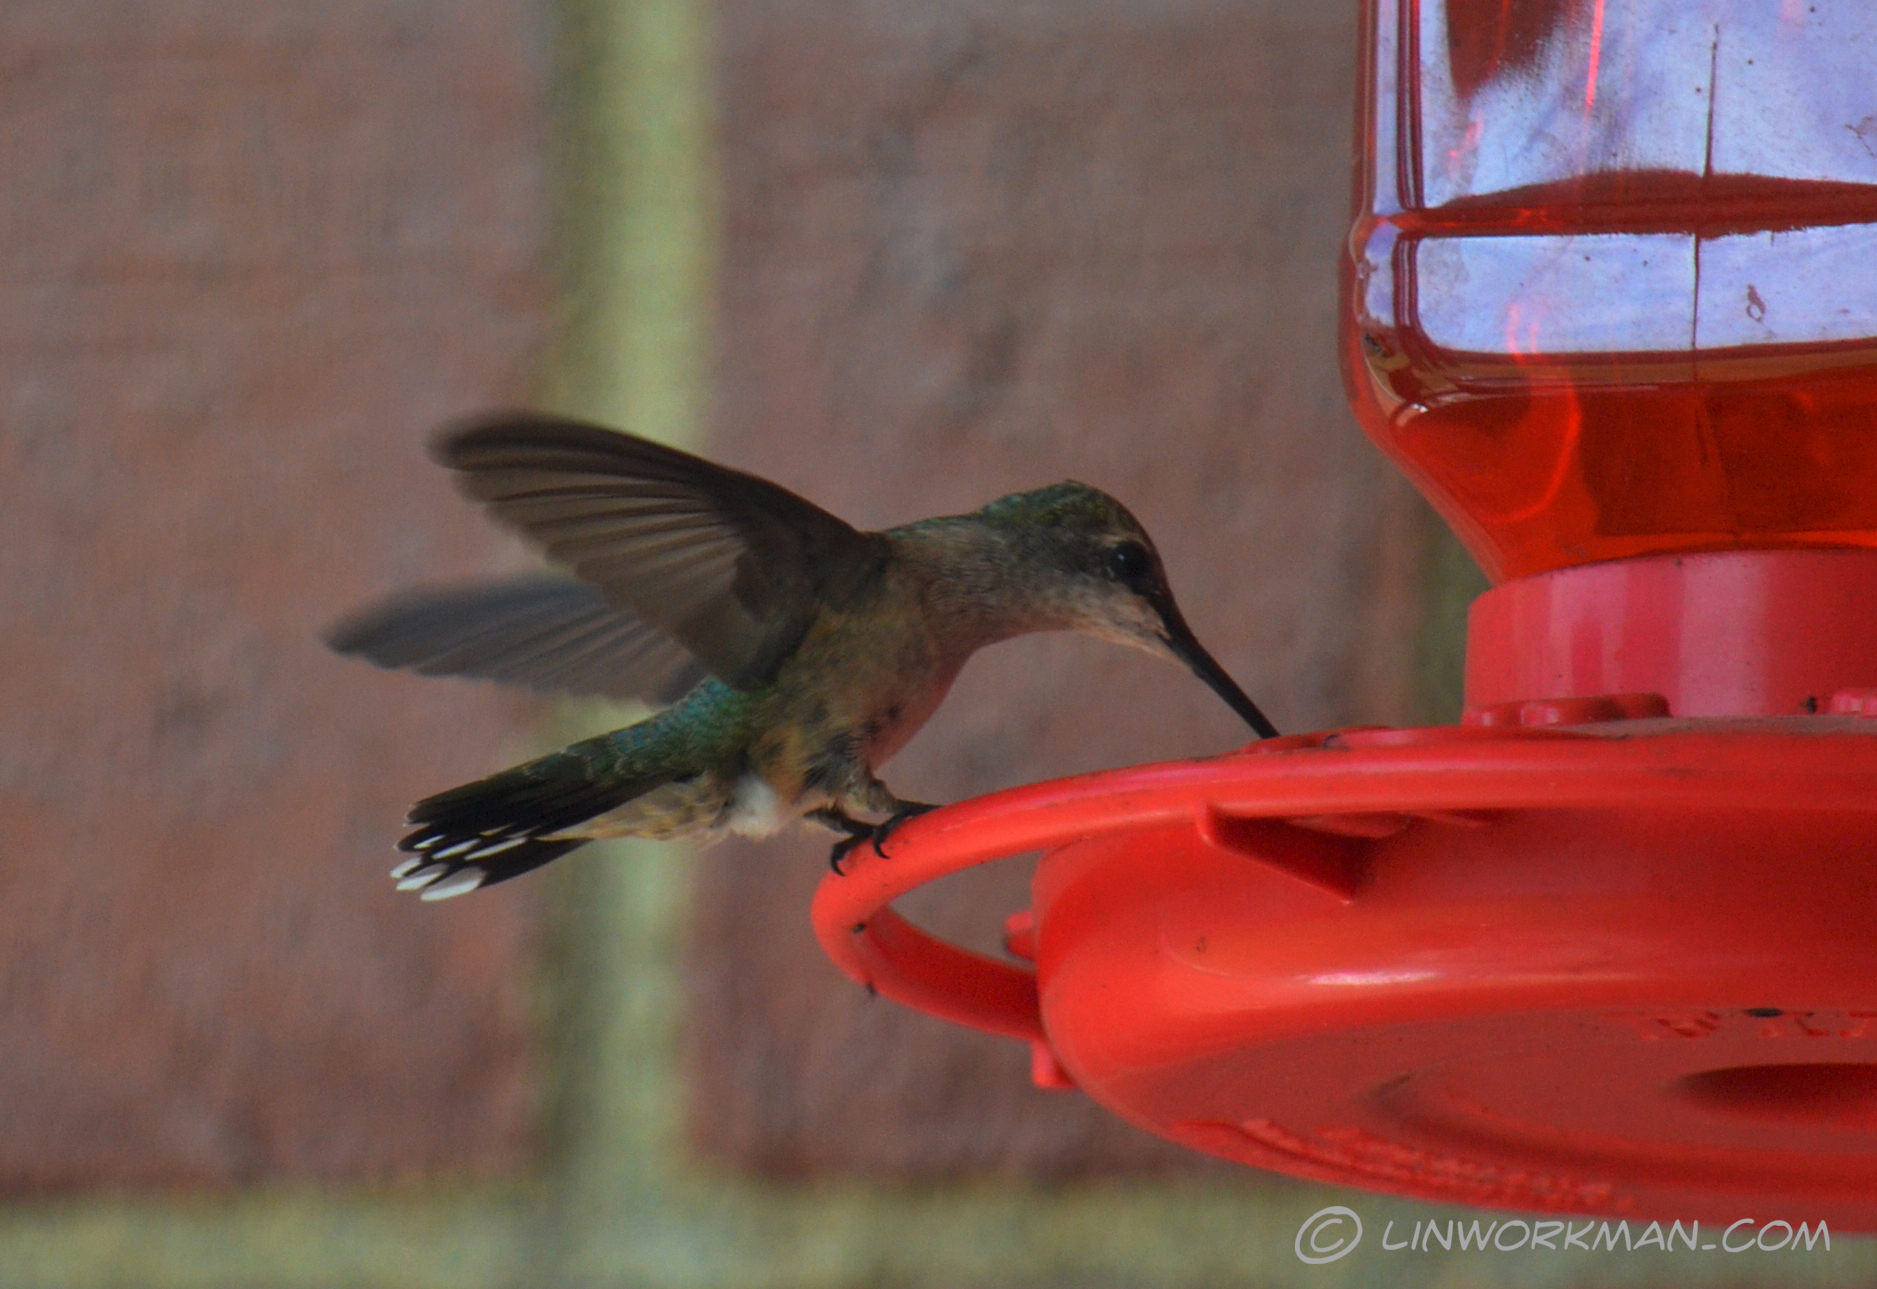 Why do humming birds hum? Because they don't know the words! New pics